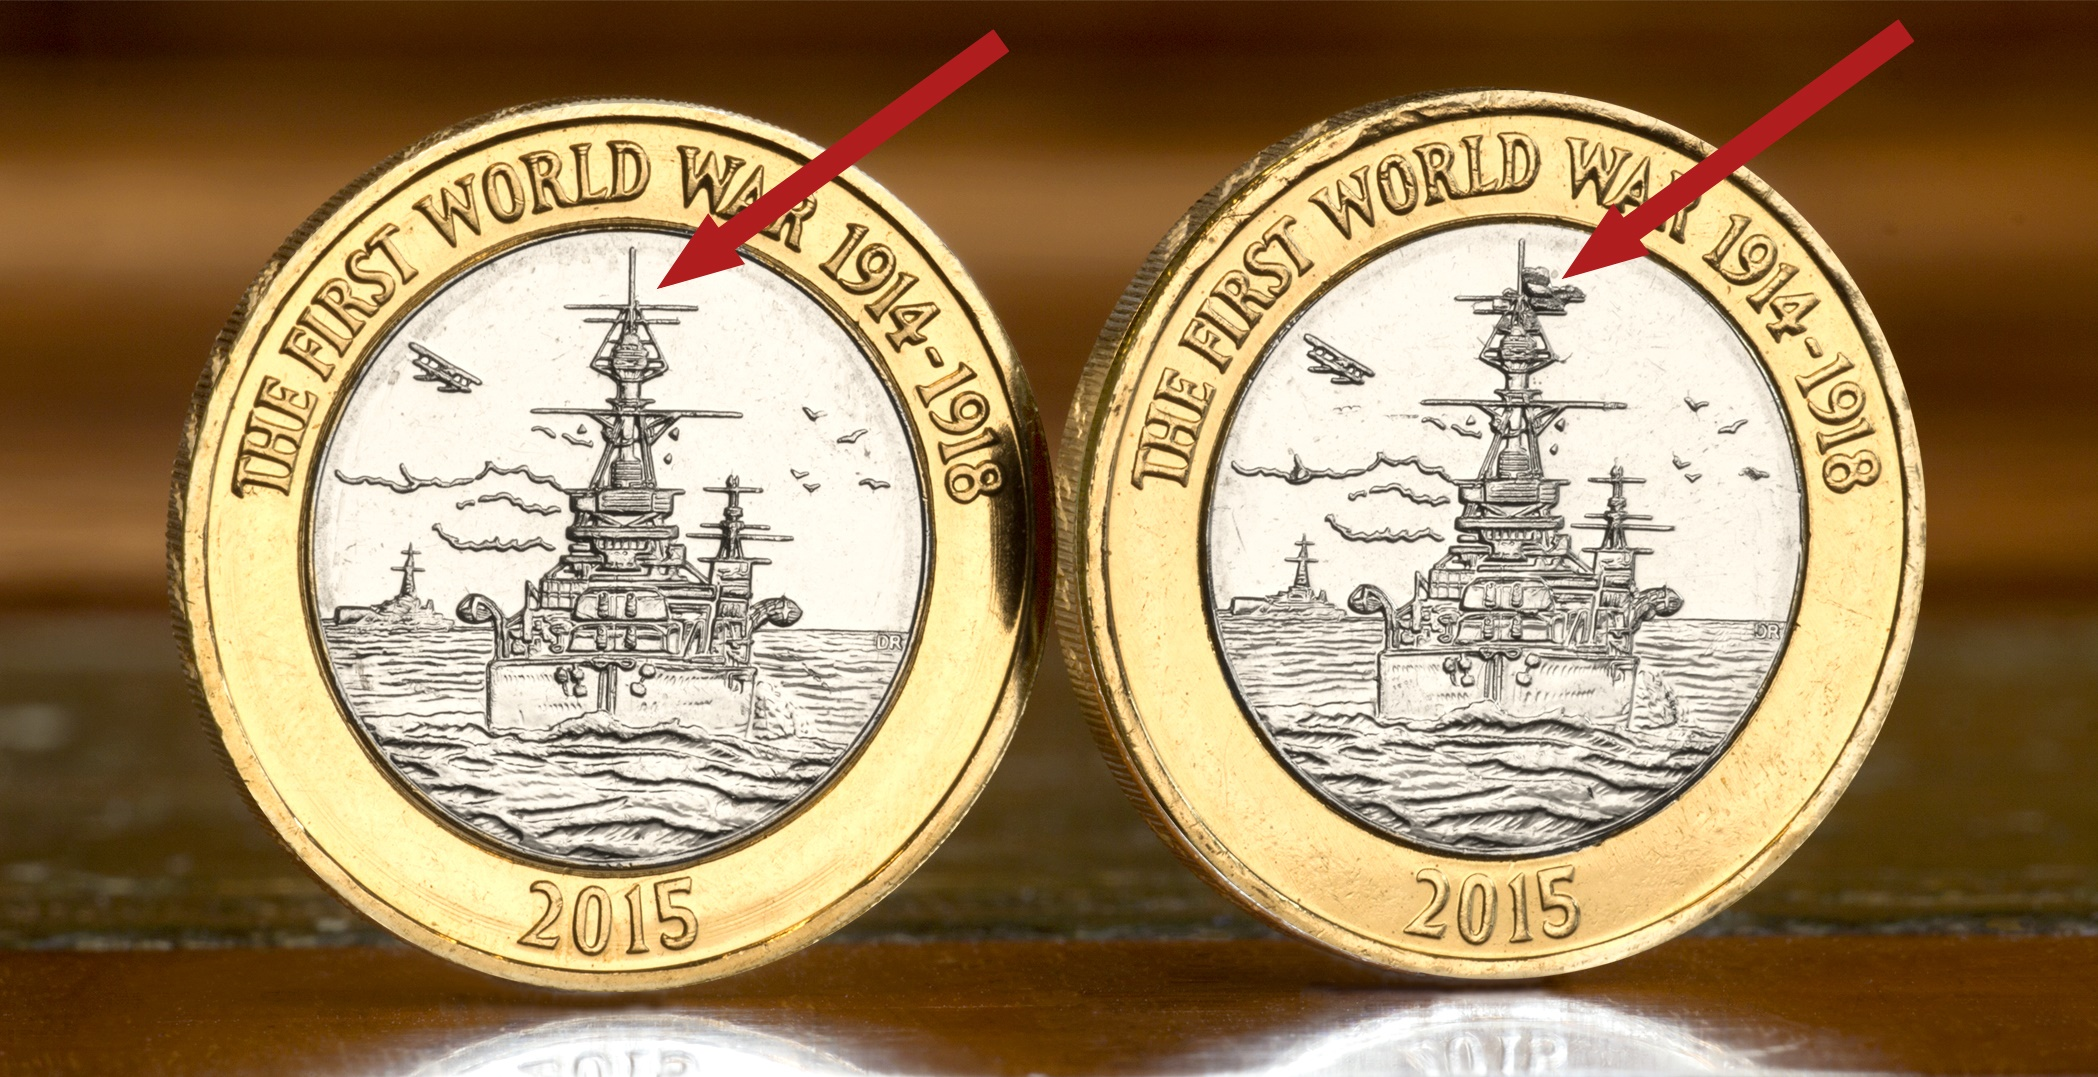 st change checker royal navy 2 mis strike with arrows - Is there an even rarer version of the Navy £2 in circulation?